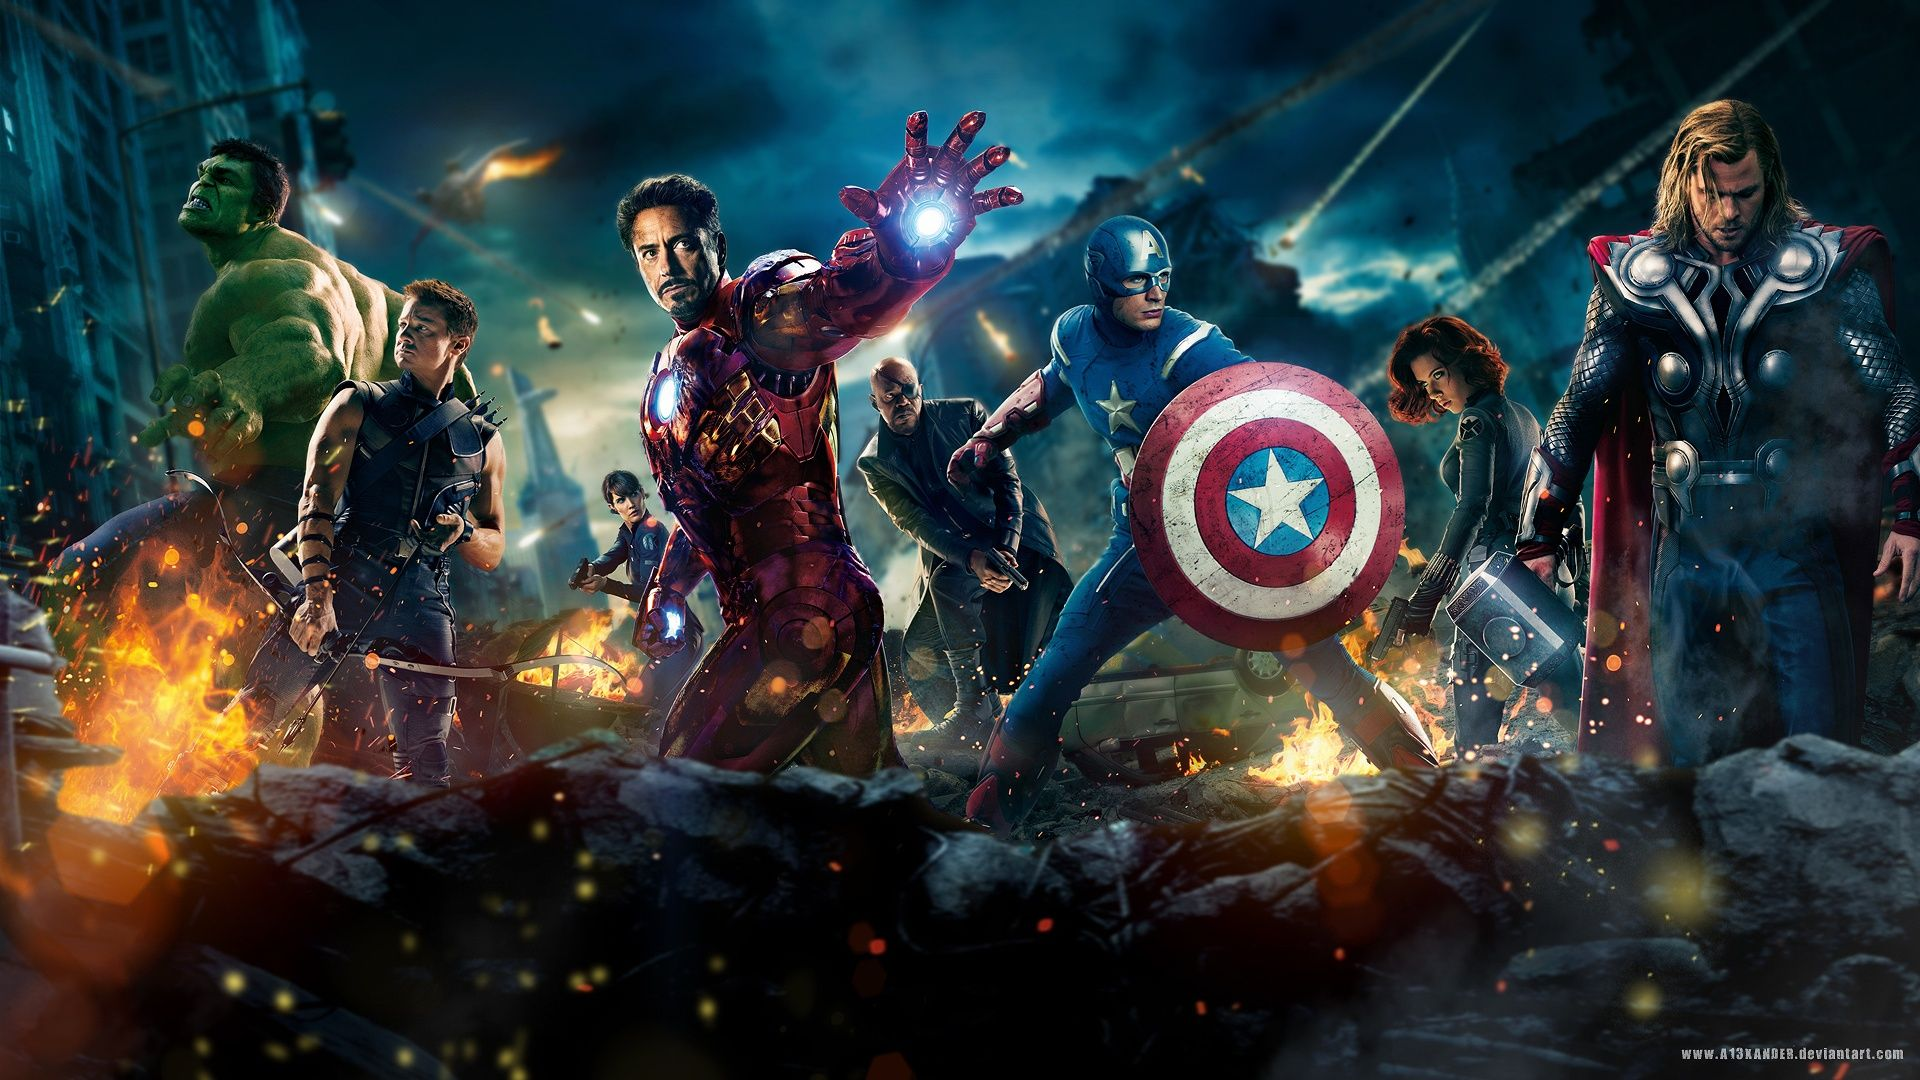 35 Best Avengers Wallpaper For Desktop Avengers Poster Avengers Wallpaper Avengers Movies